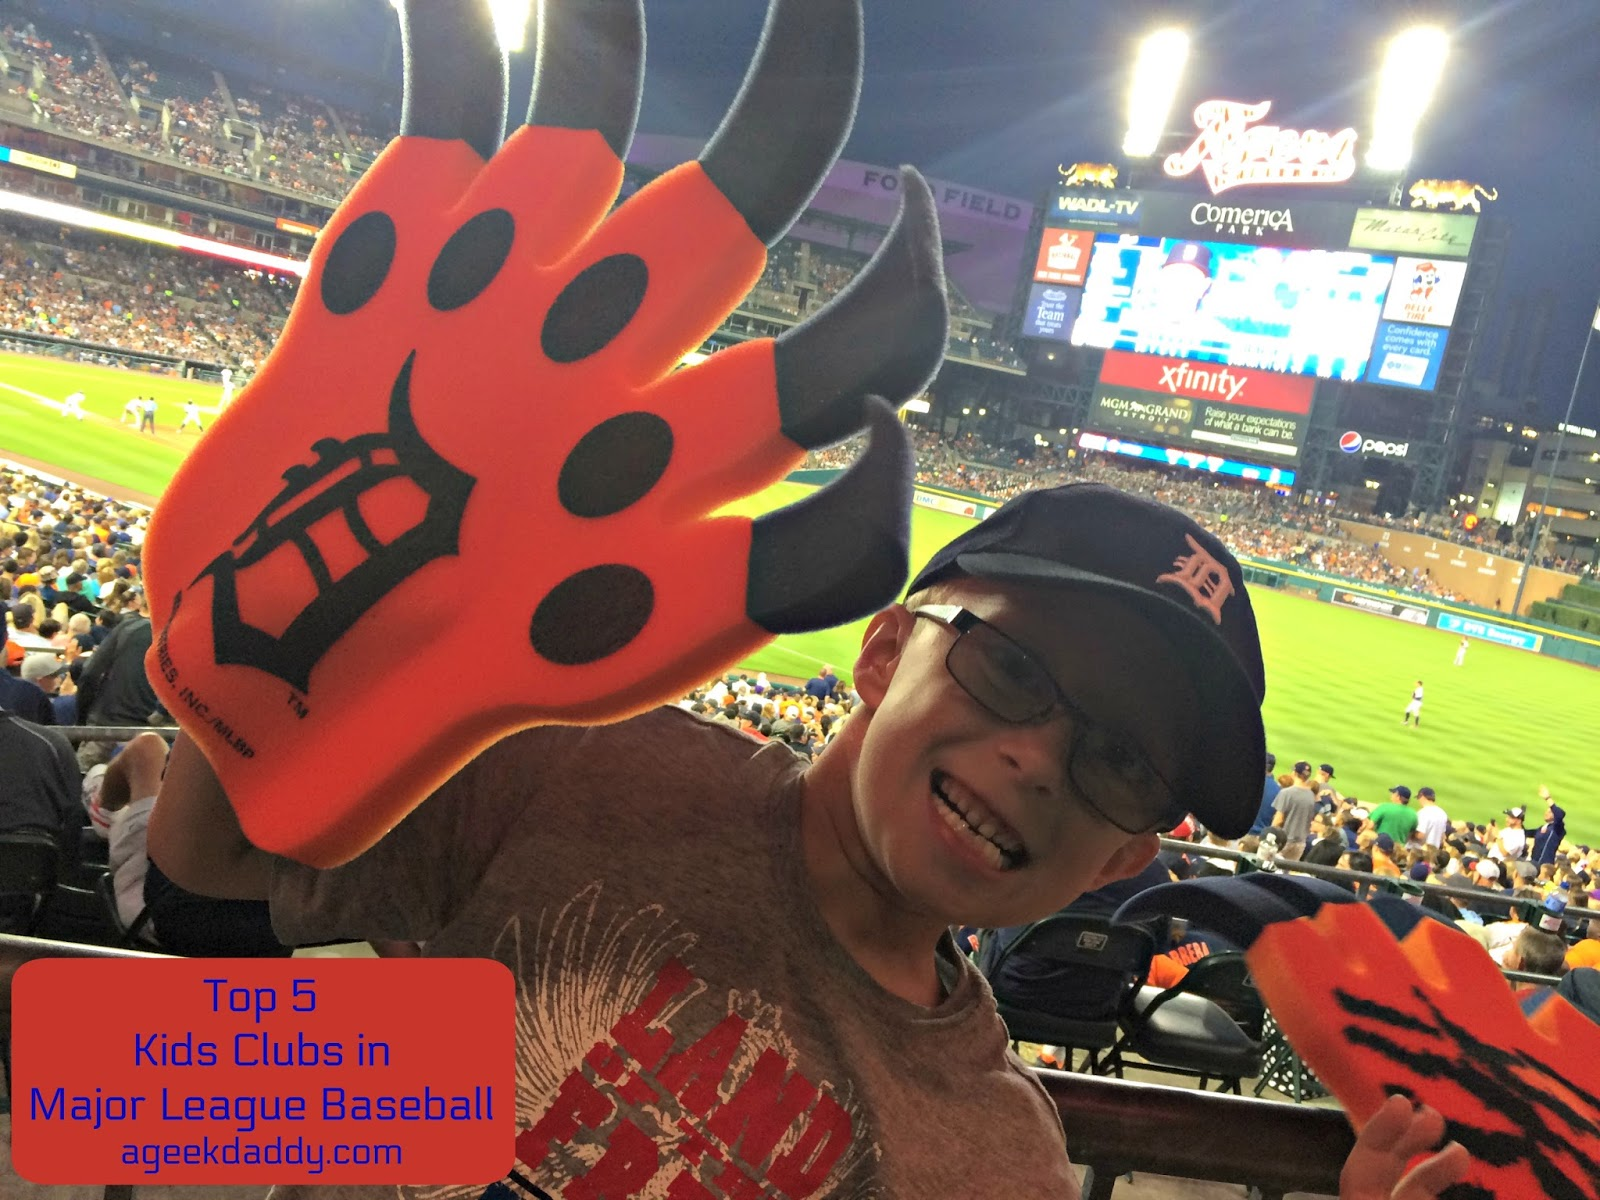 d2629e488 Major League Baseball is back in the full swing of things for another  season so that means it is time for A Geek Daddy s annual look at the best